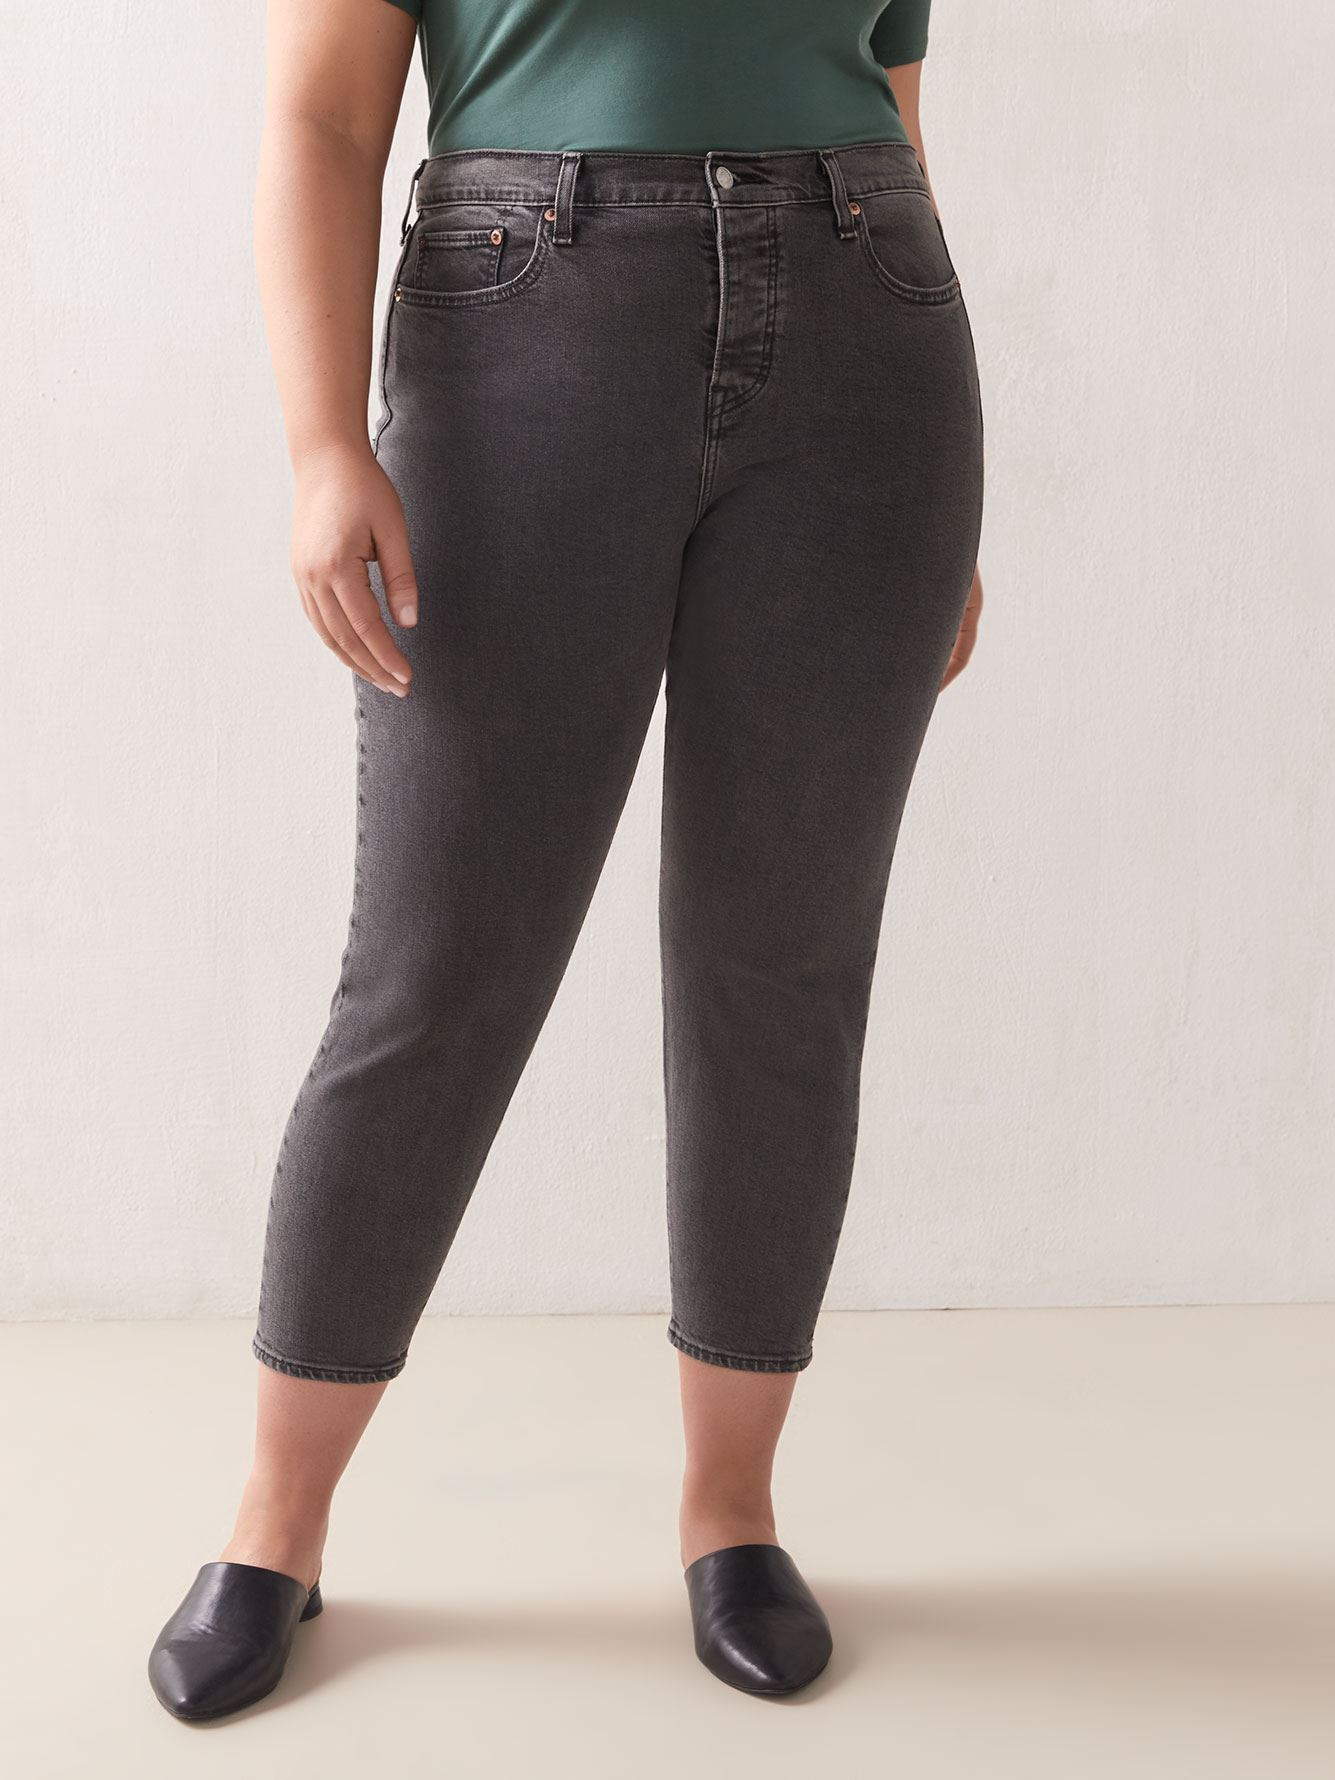 Stretchy High-Rise Wedgie Black Jean - Levi's Premium